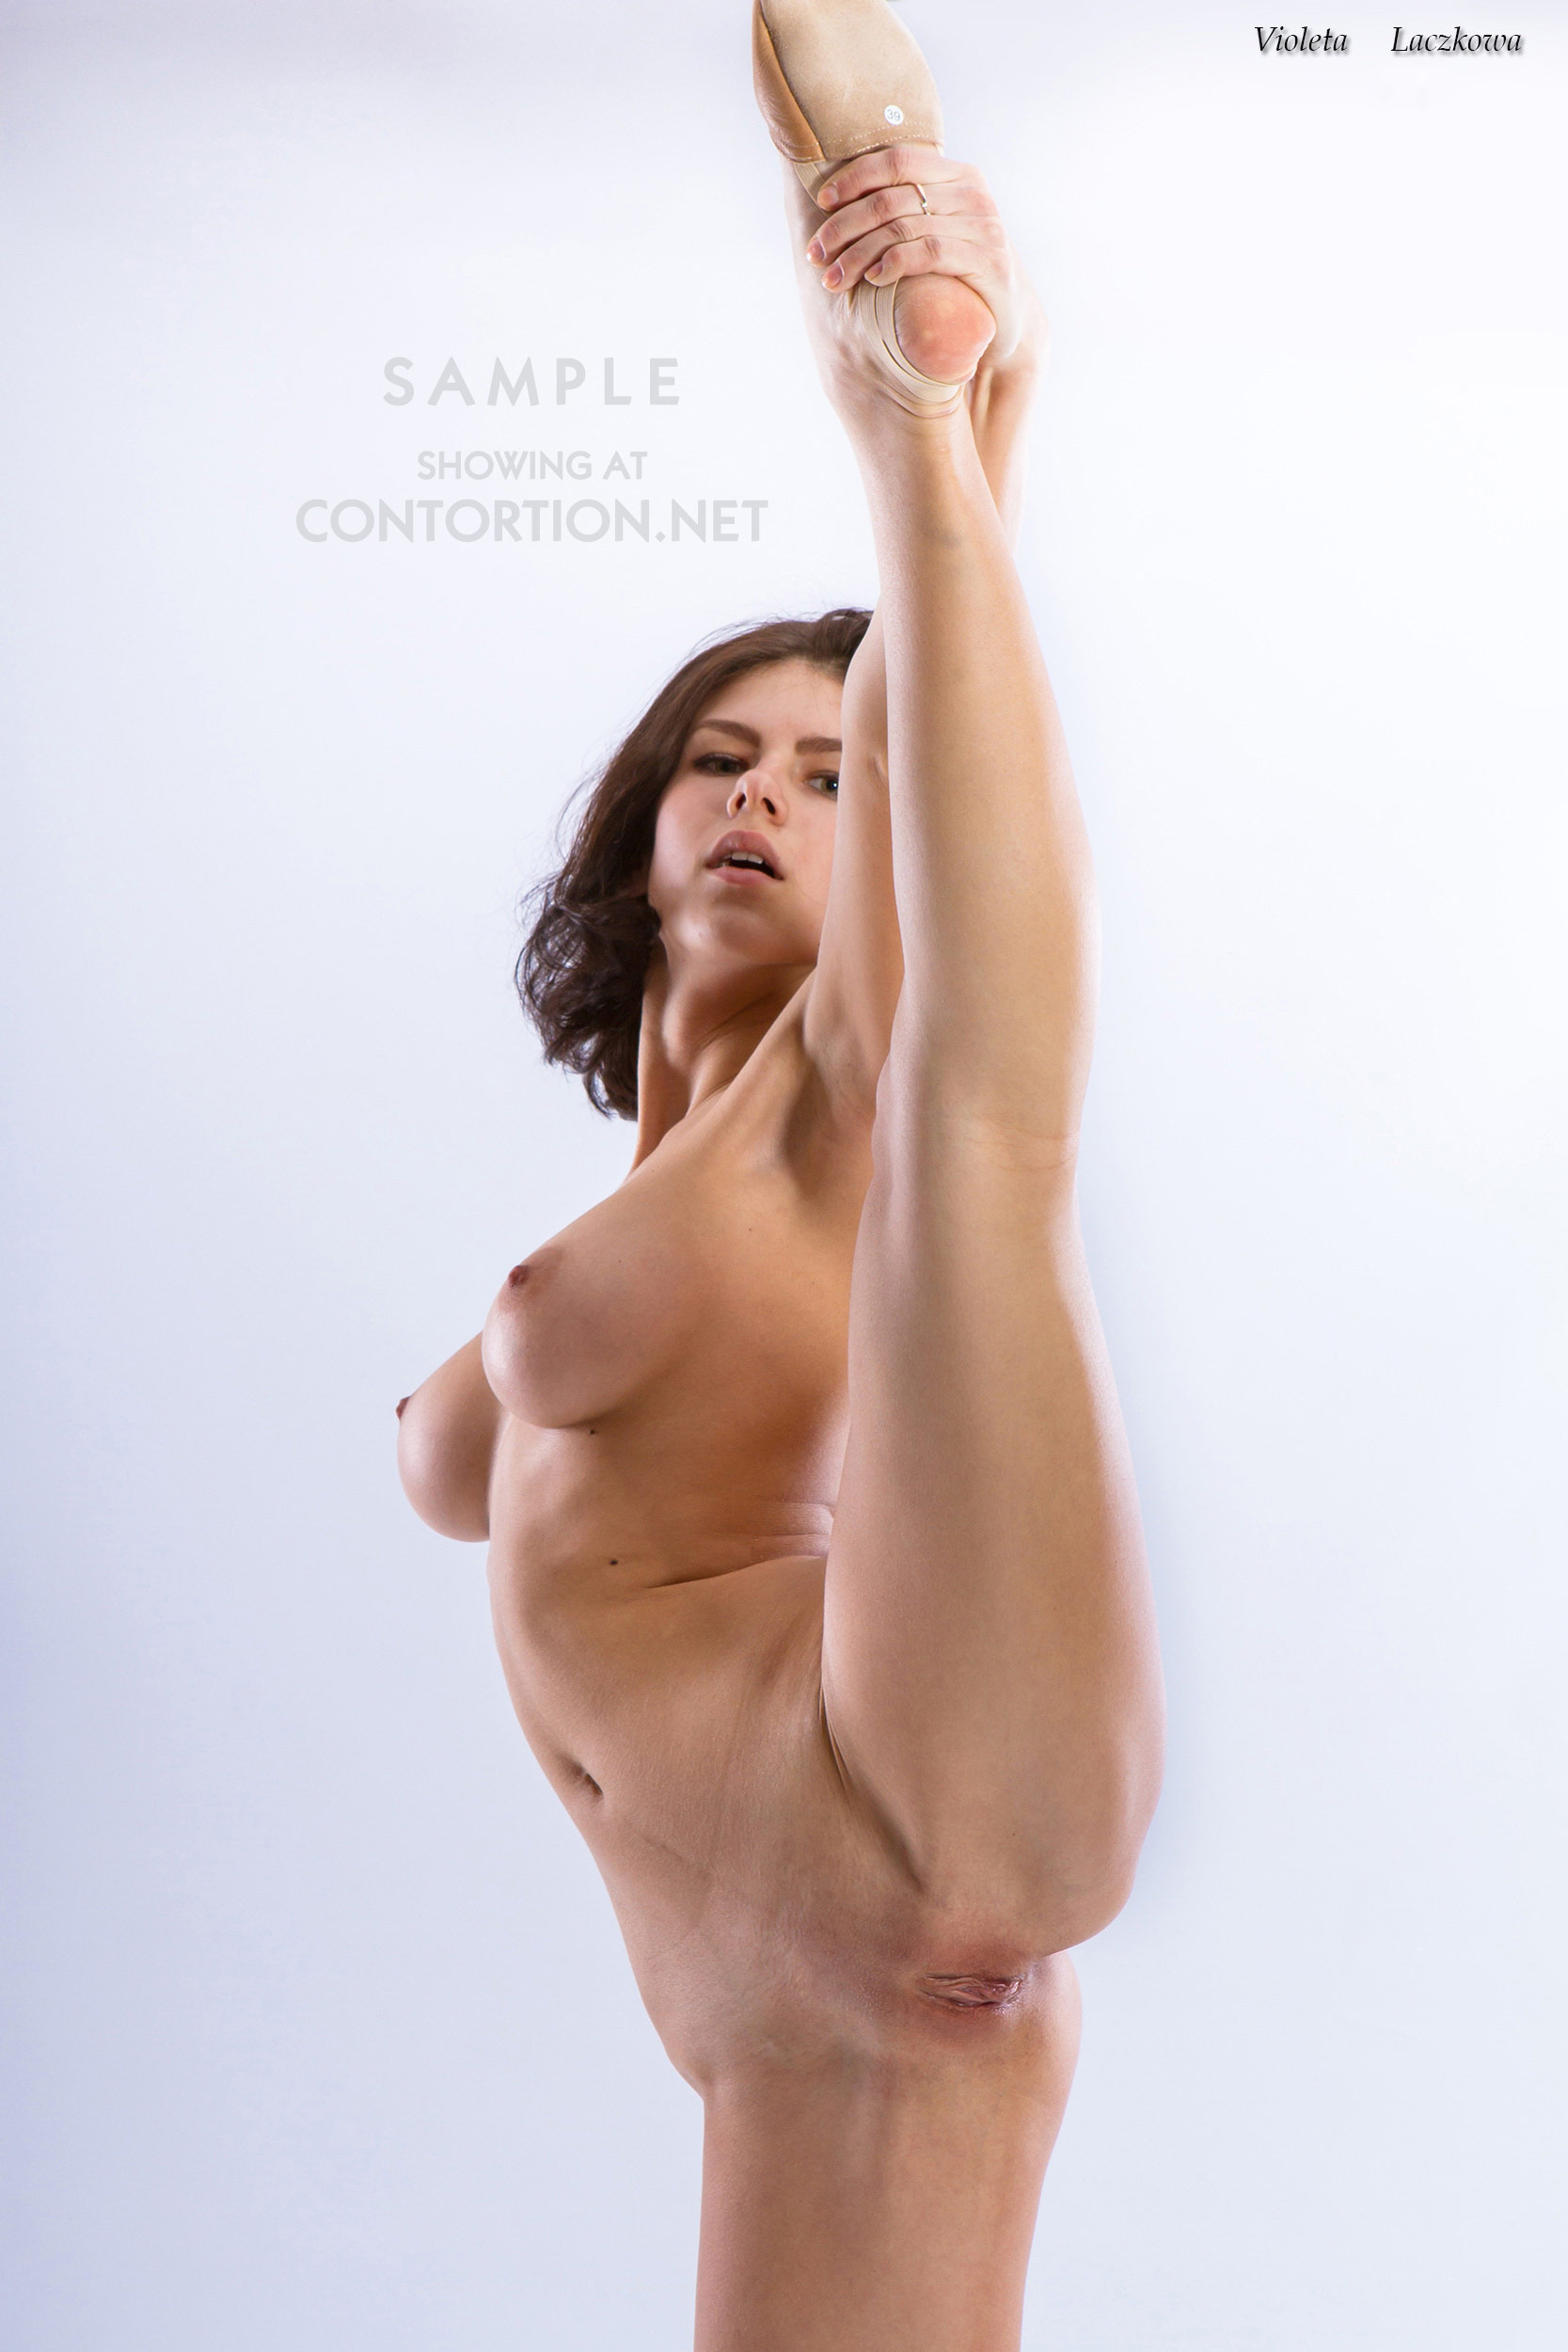 Nude ballet dancers preview gallery